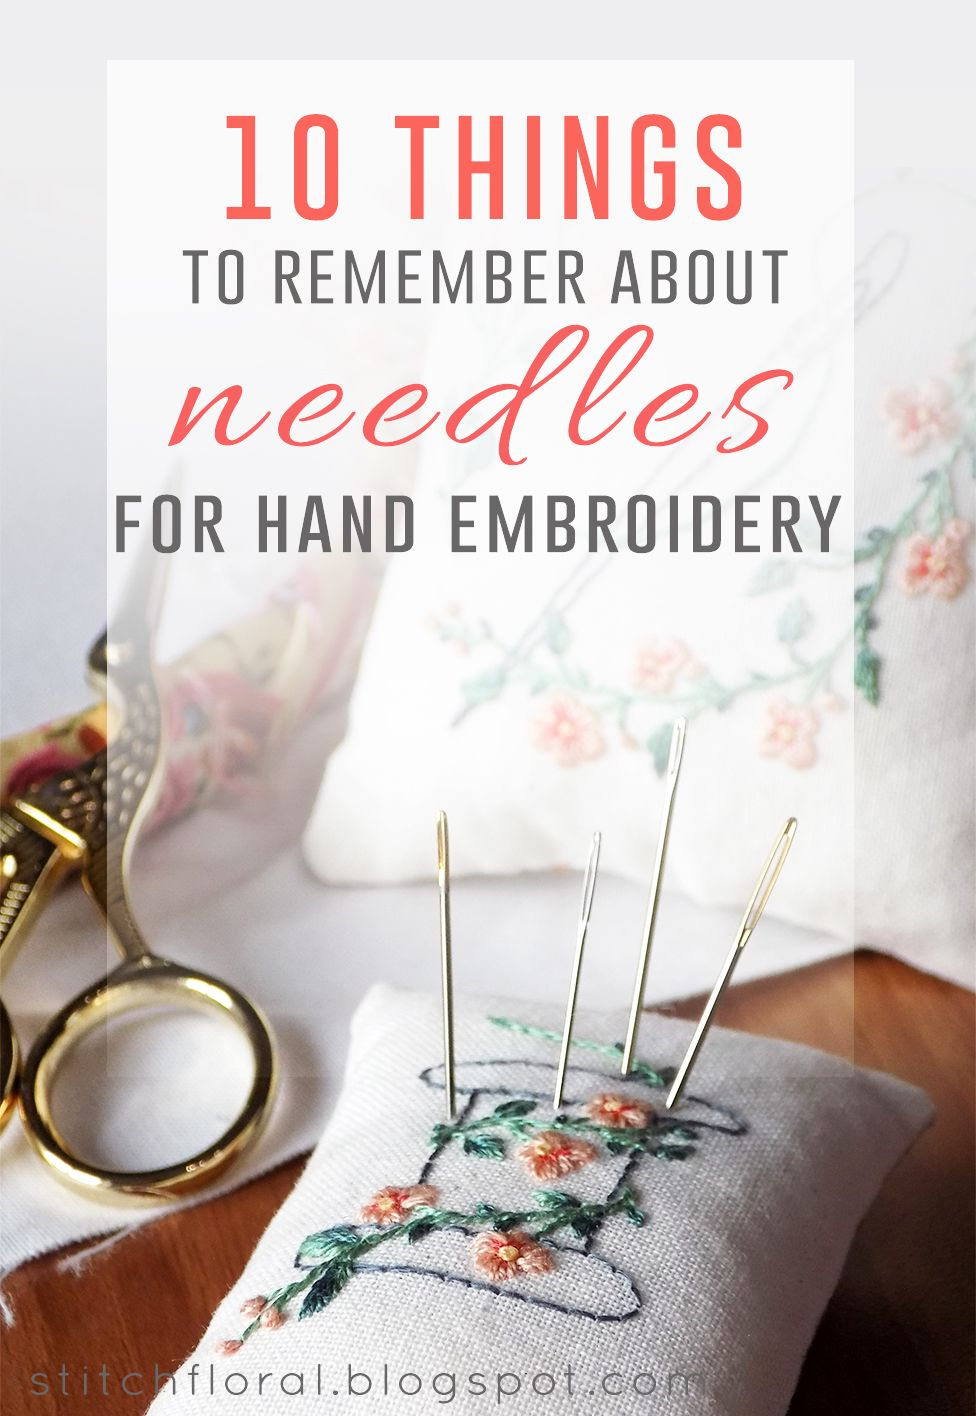 Embroidery Stitchery Tutorial: 10 Things To Remember About Hand Embroidery  Needles from StitchFloral.blogspot.com. jwt